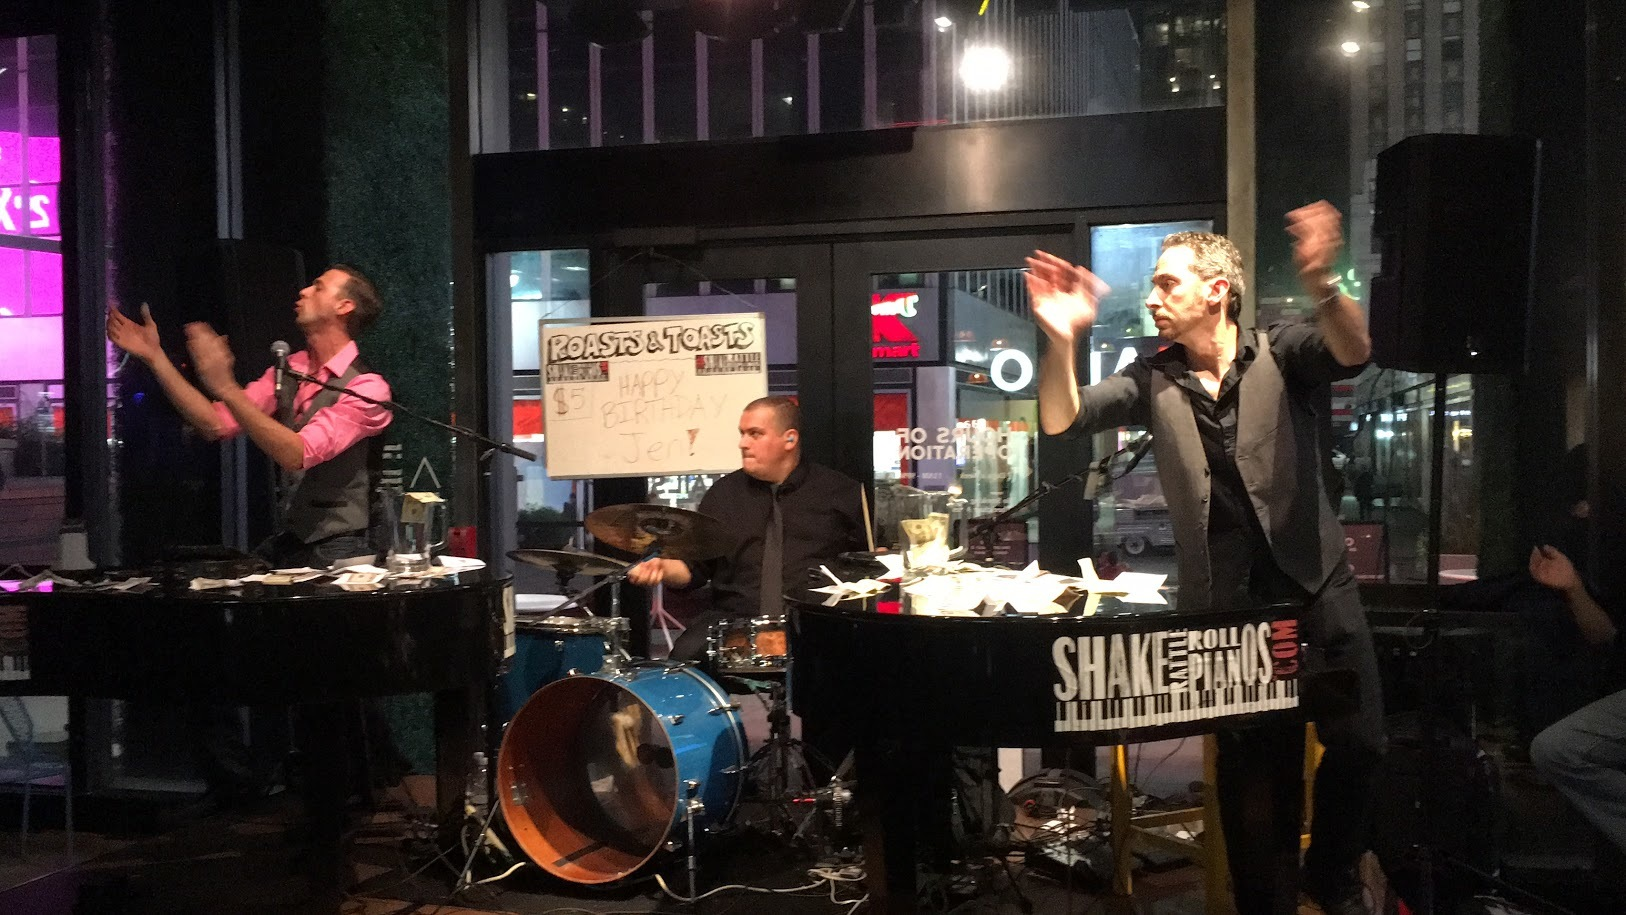 Save $10 at Shake, Rattle & Roll Dueling Pianos Bar